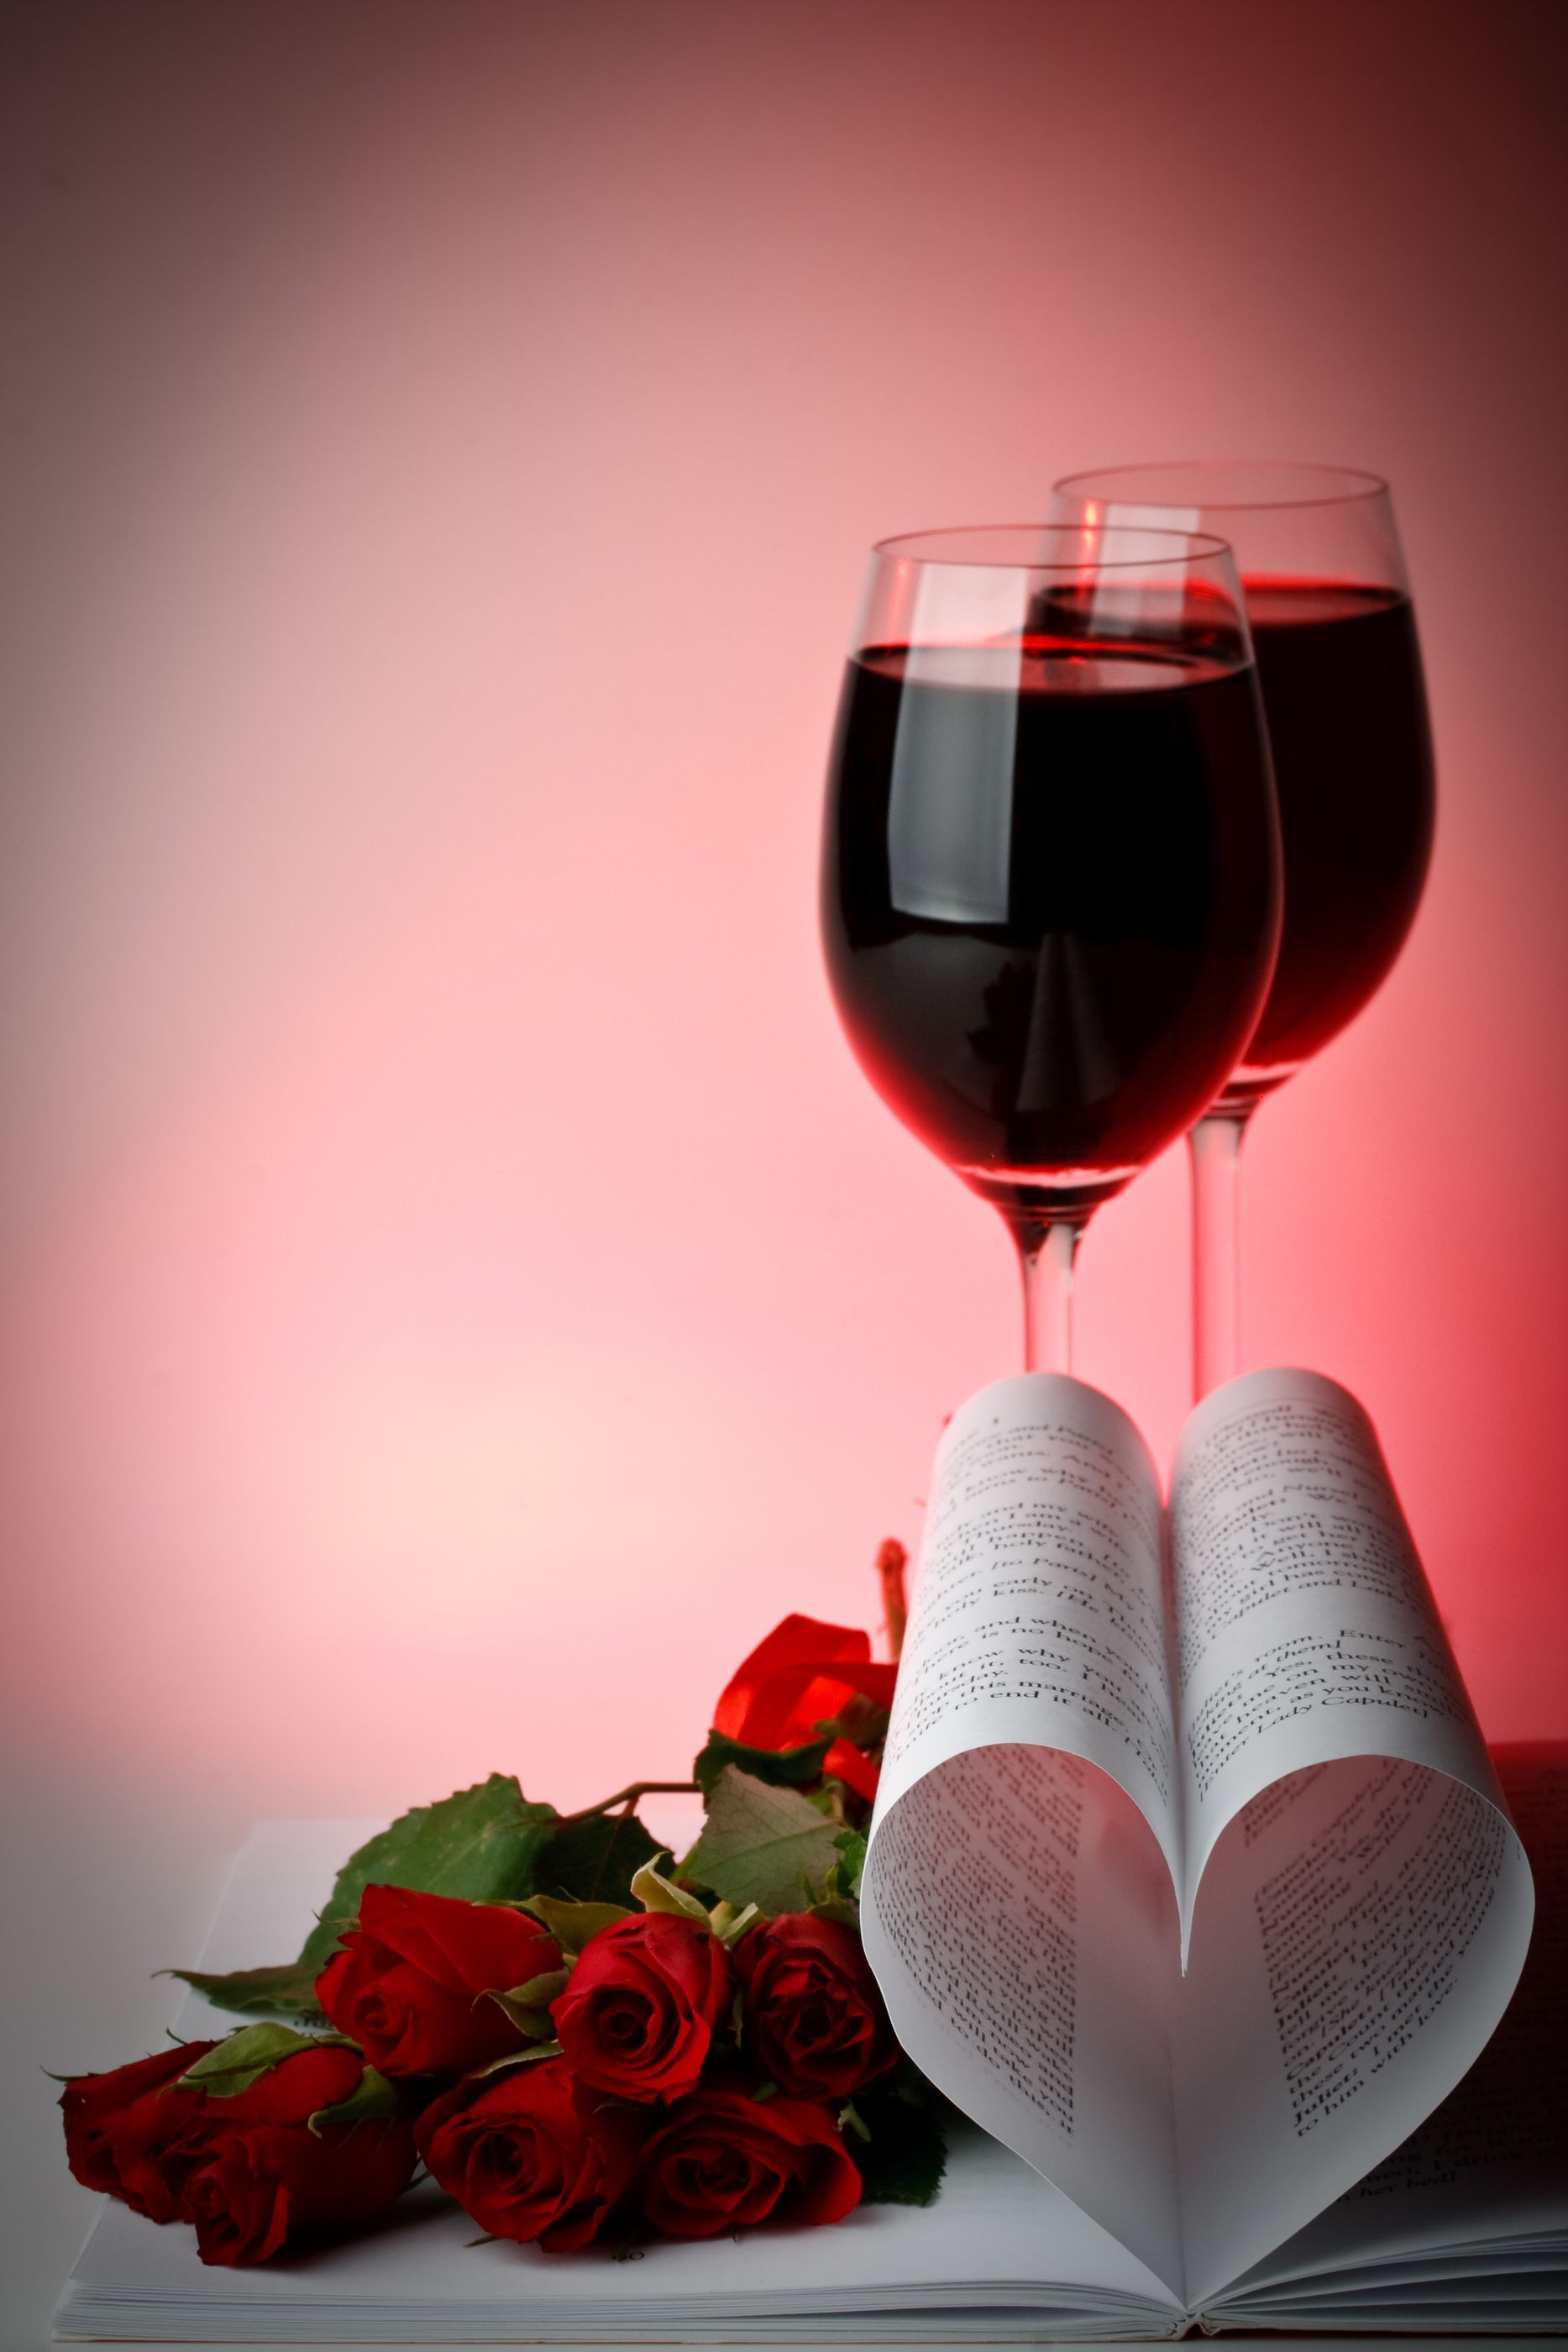 Enjoy A Romance Book And A Glass Of Wine Wine Photography Red Wine Wine Humor